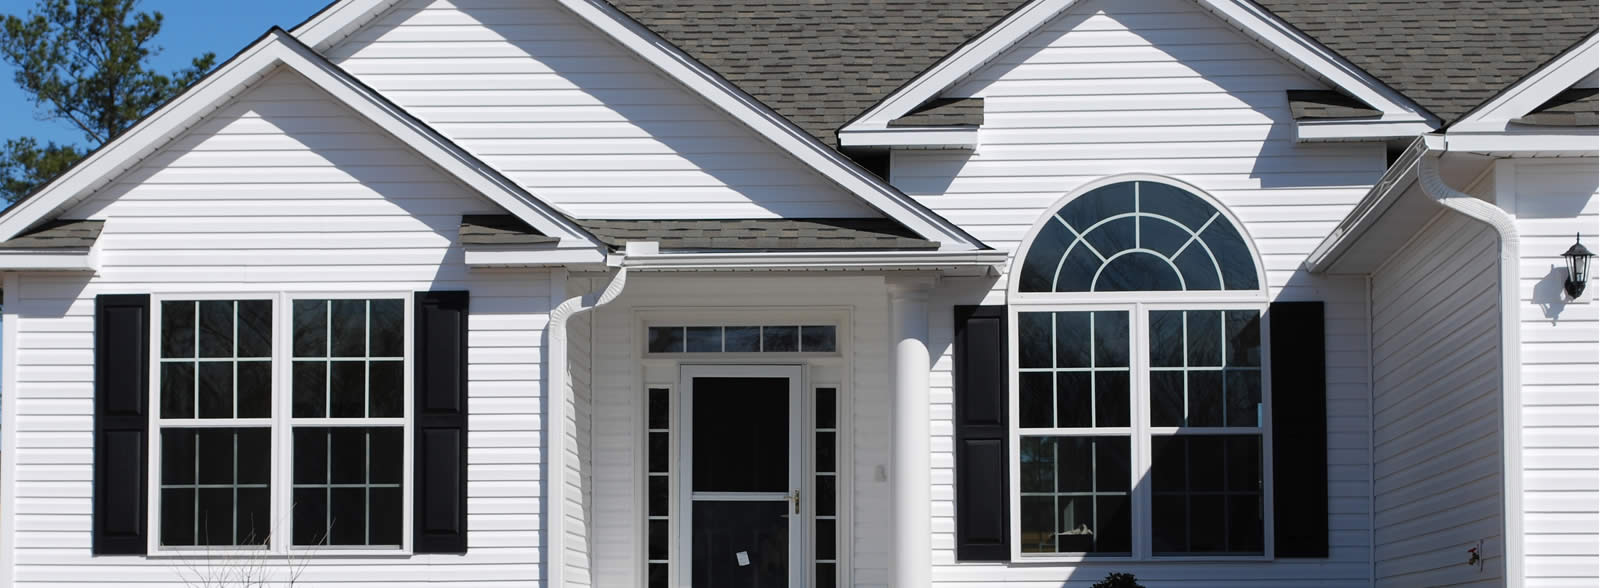 Superior Exterior Home Improvement Services. From Vinyl Siding In Memphis,  TN To Roof ...